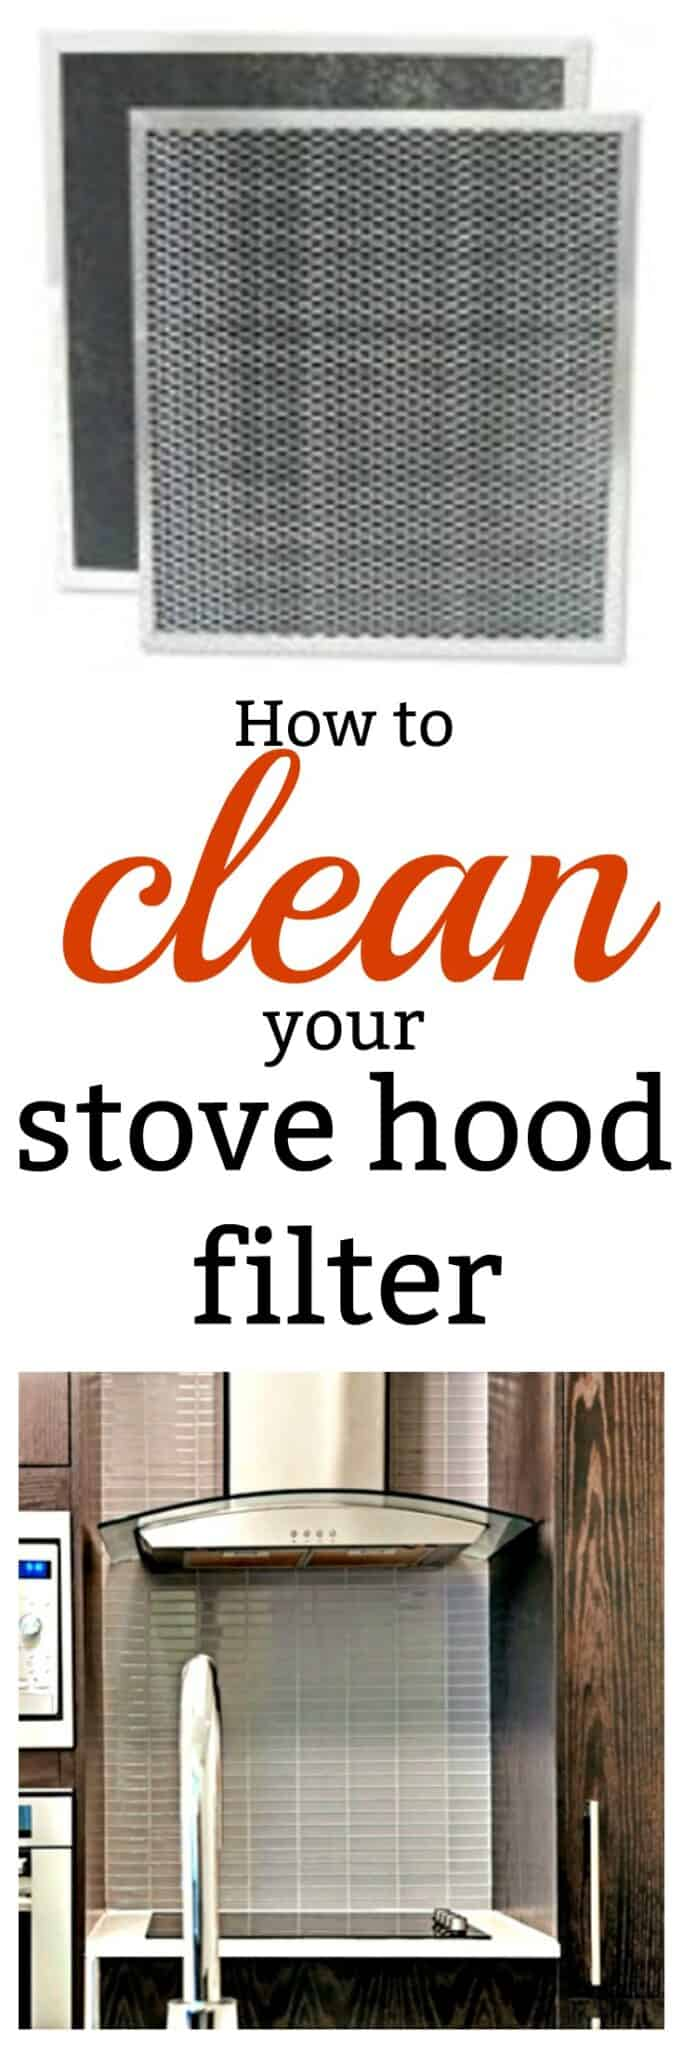 How to Clean Stove Hood Filters - Easy no-scrub method & more tips